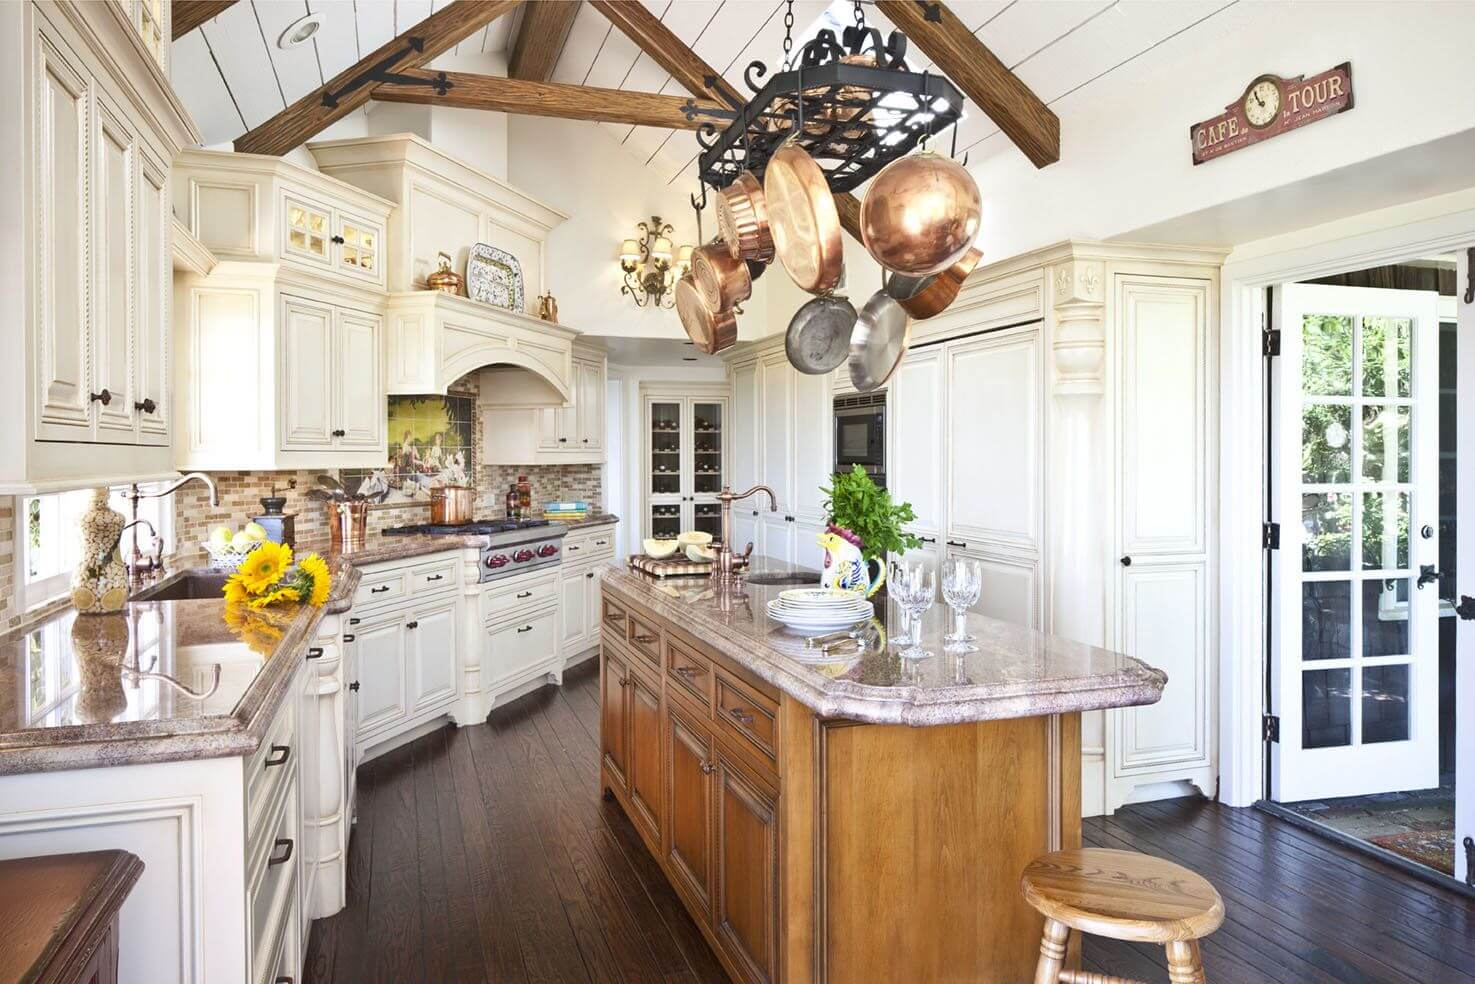 Large central wooden kitchen island in the Provence interior